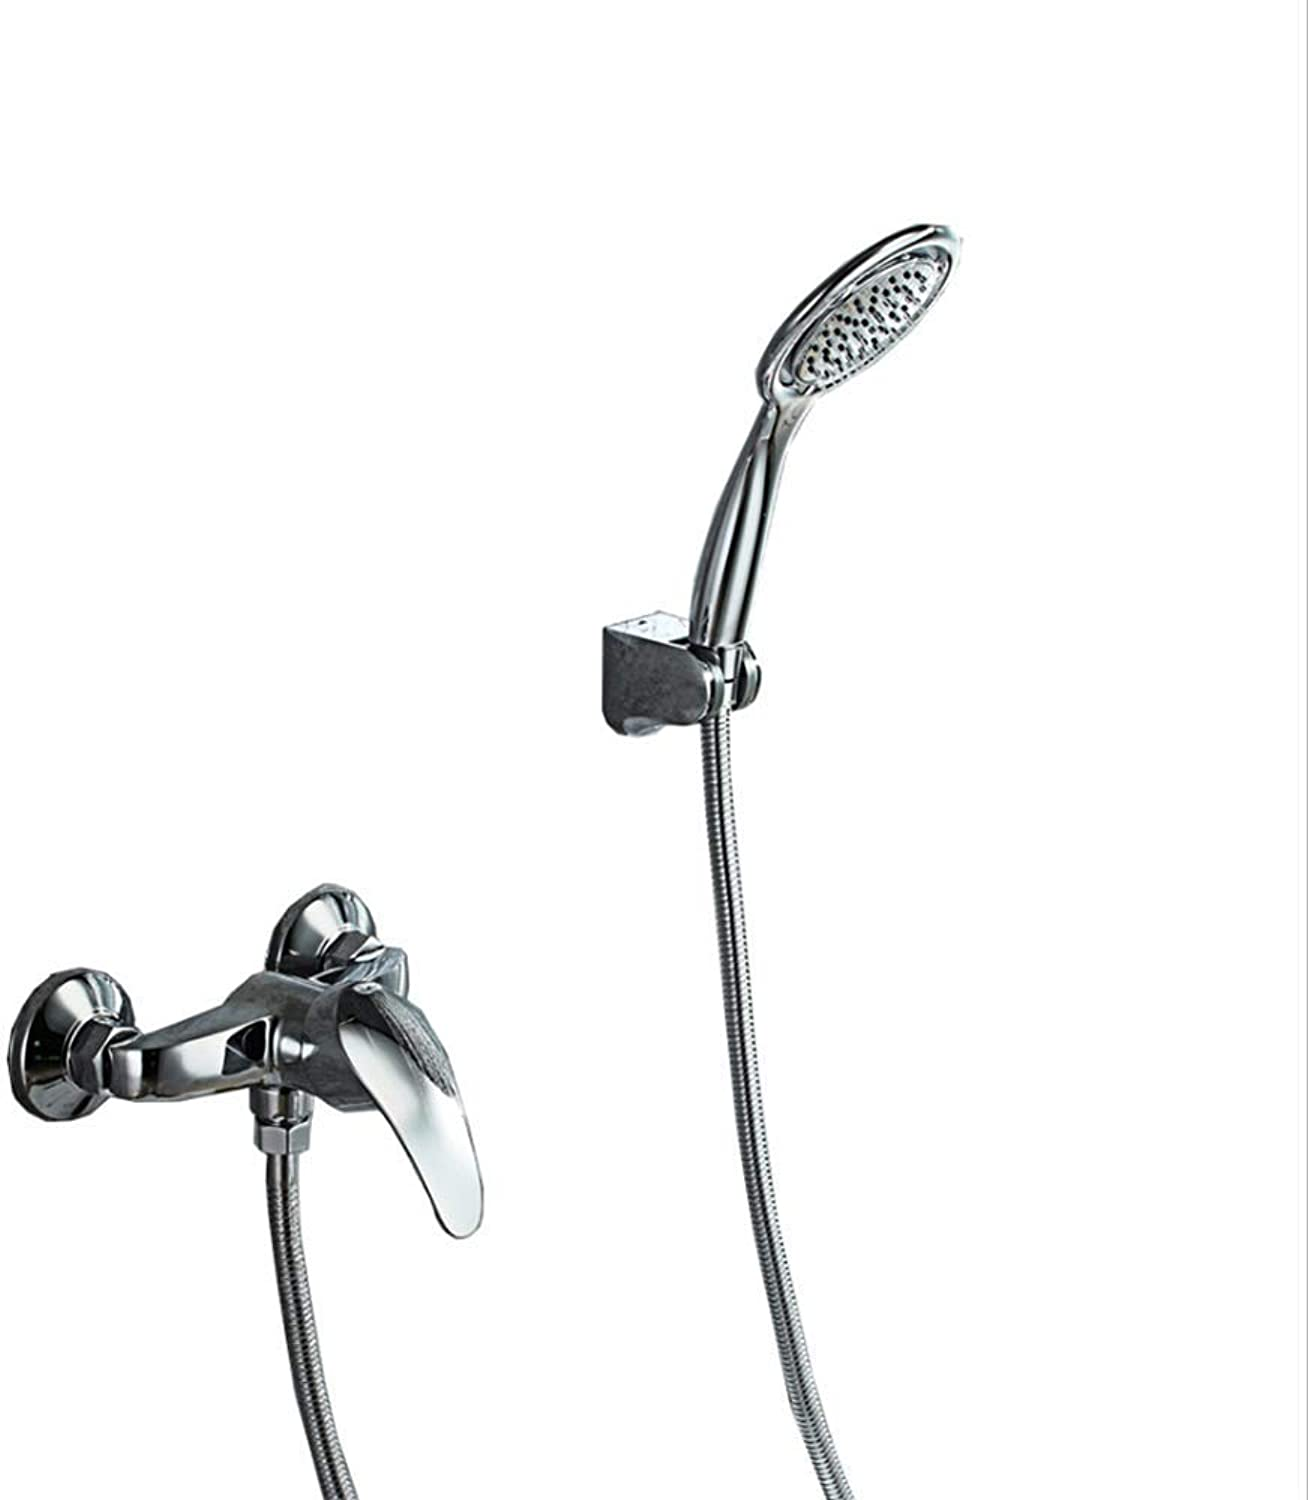 Bathroom Wall-mounted Shower, Bath Taps With Shower, Stainless Steel Bath Shower Set, Hot and Cold Mixing Water